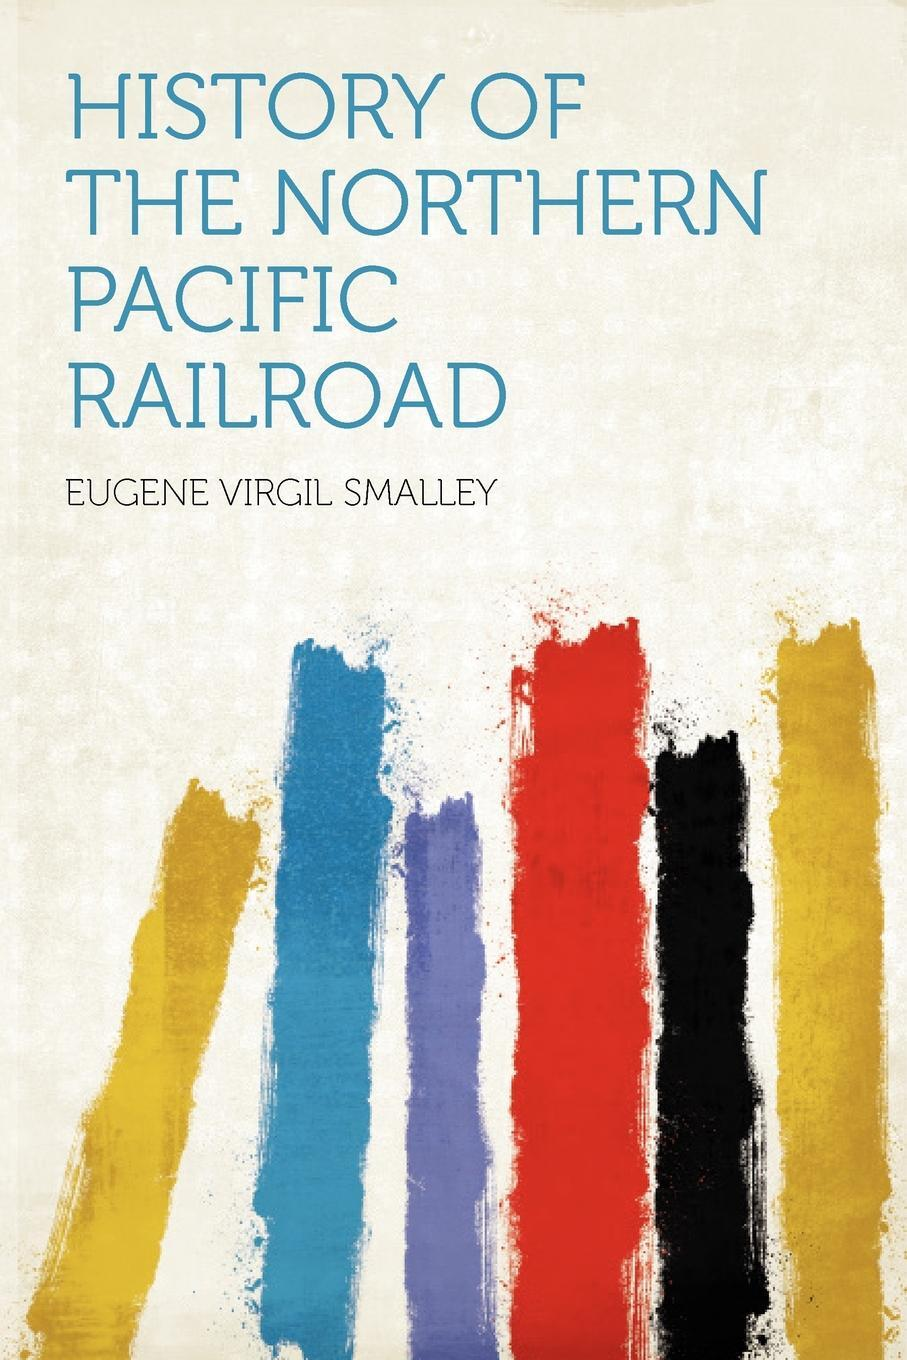 History of the Northern Pacific Railroad.